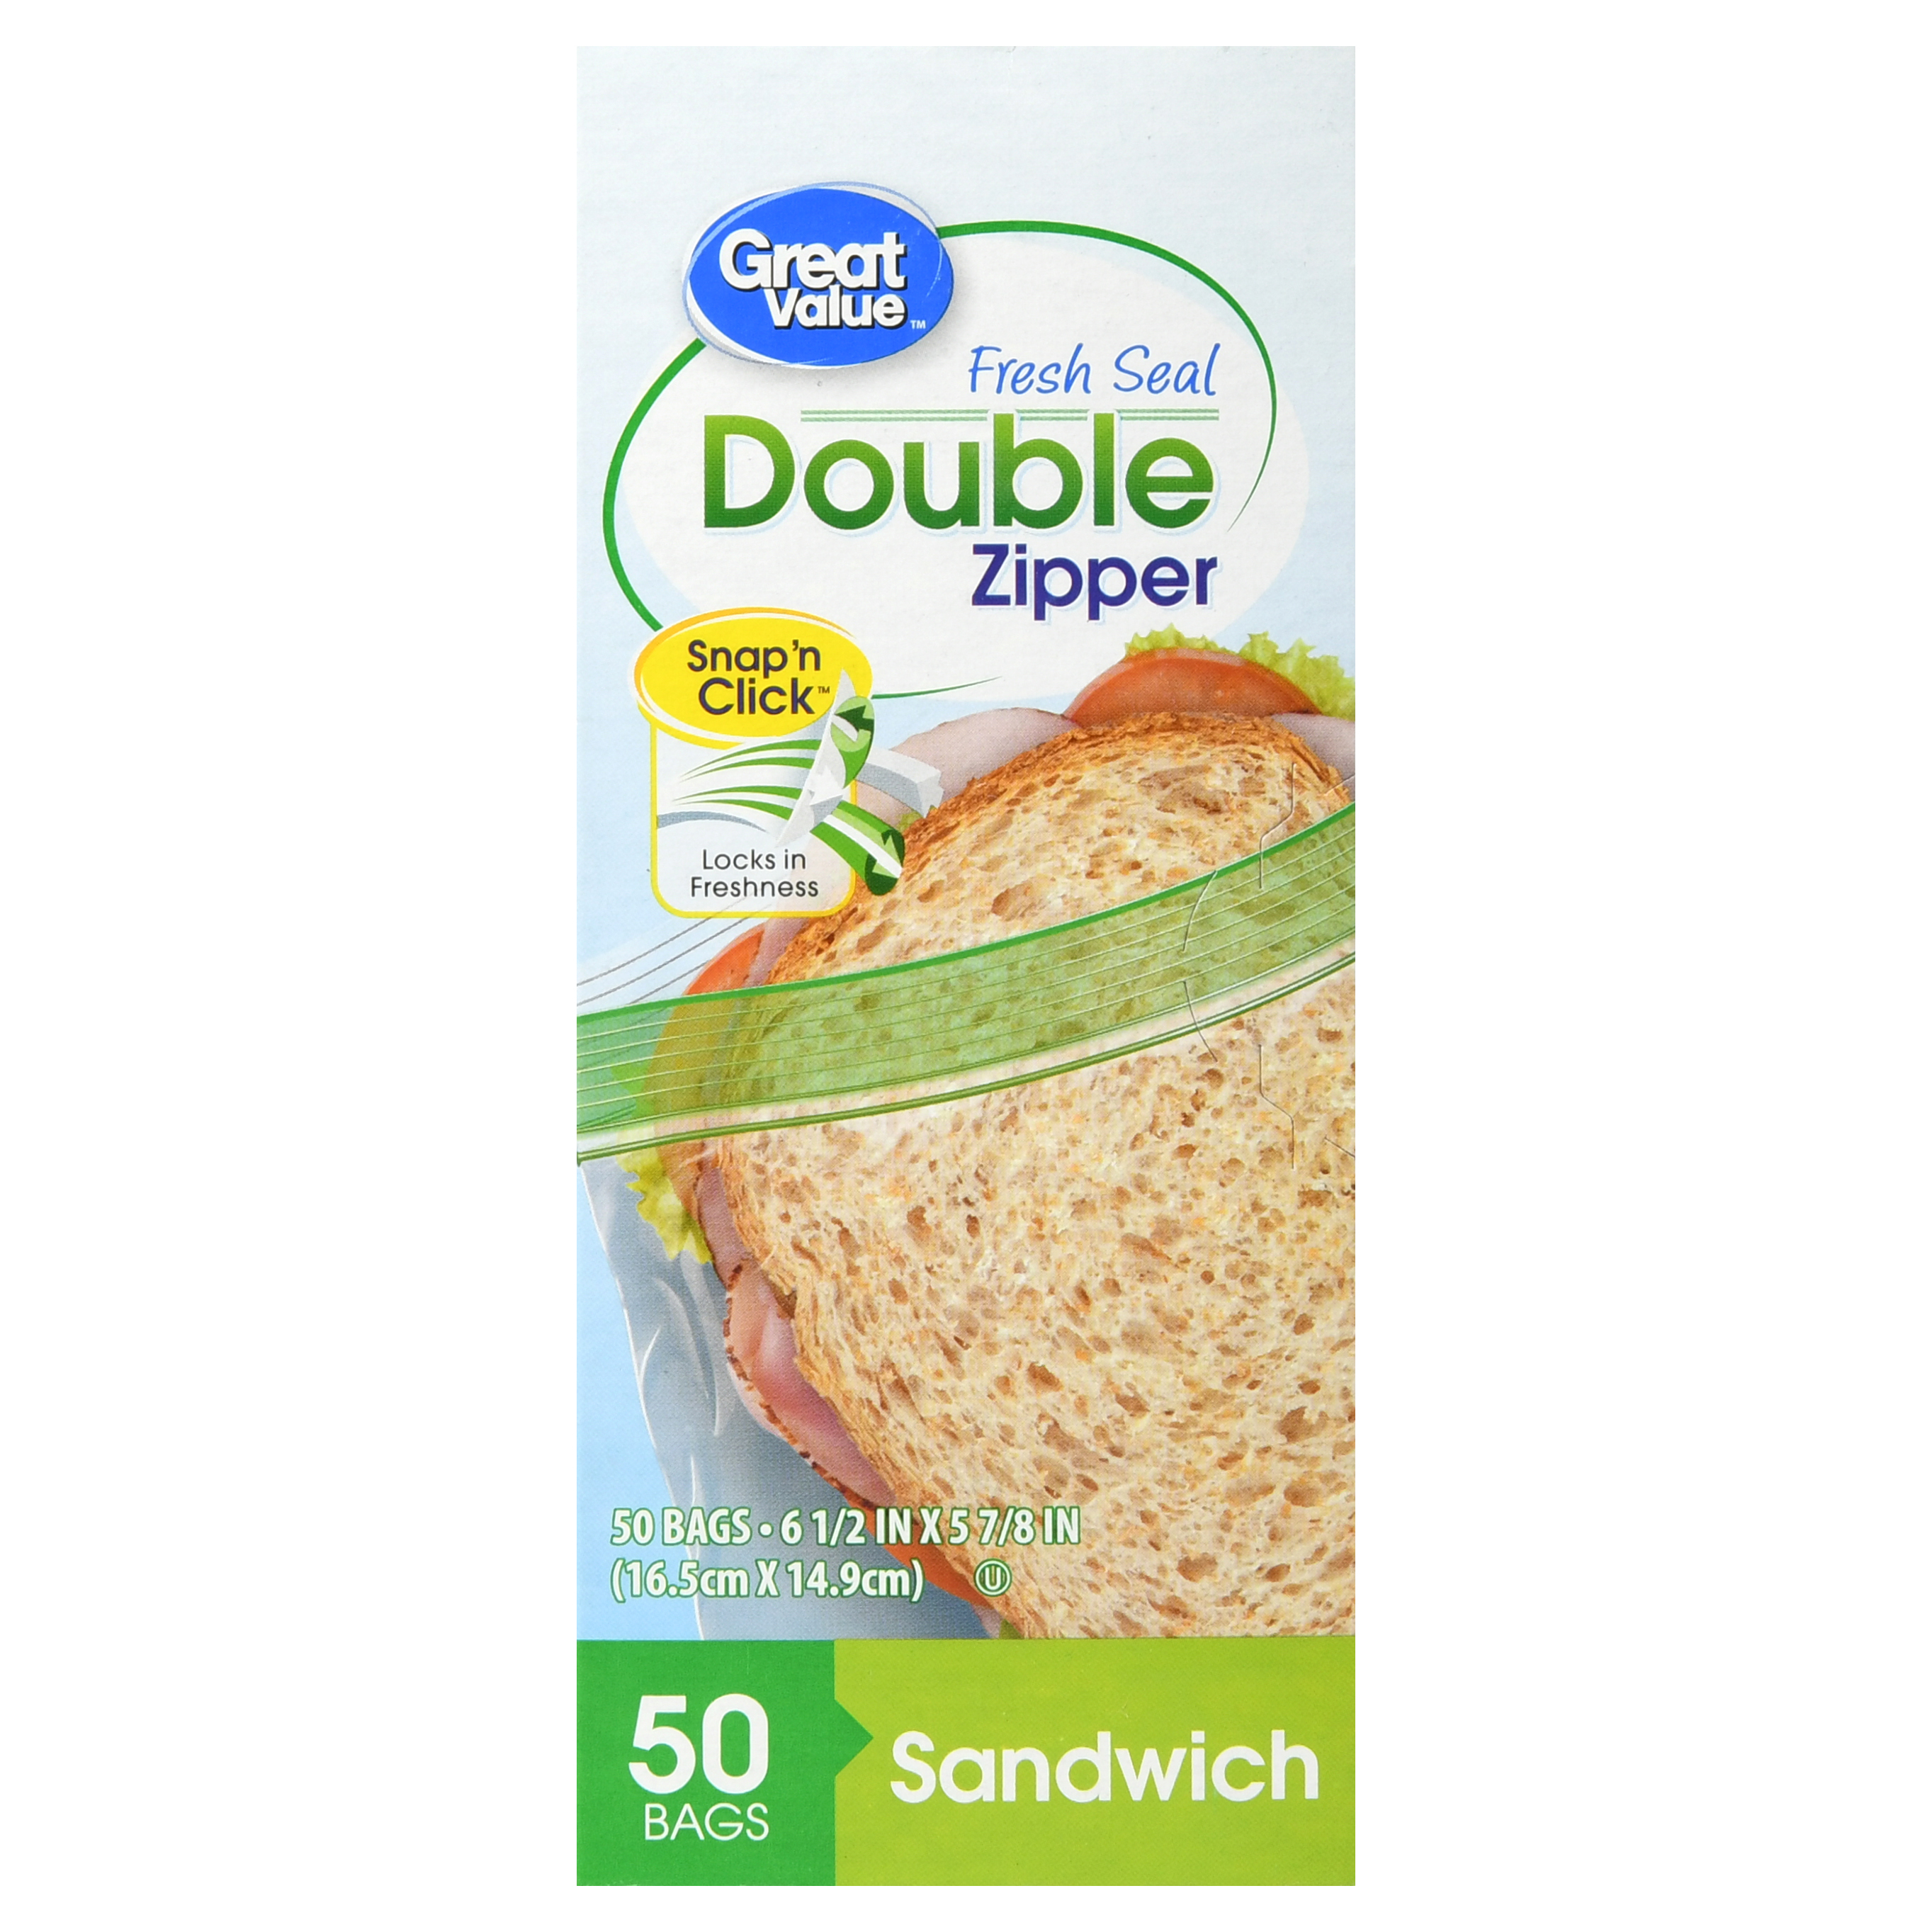 Great Value Double Zipper Food Storage Bags, Sandwich, 50 Count